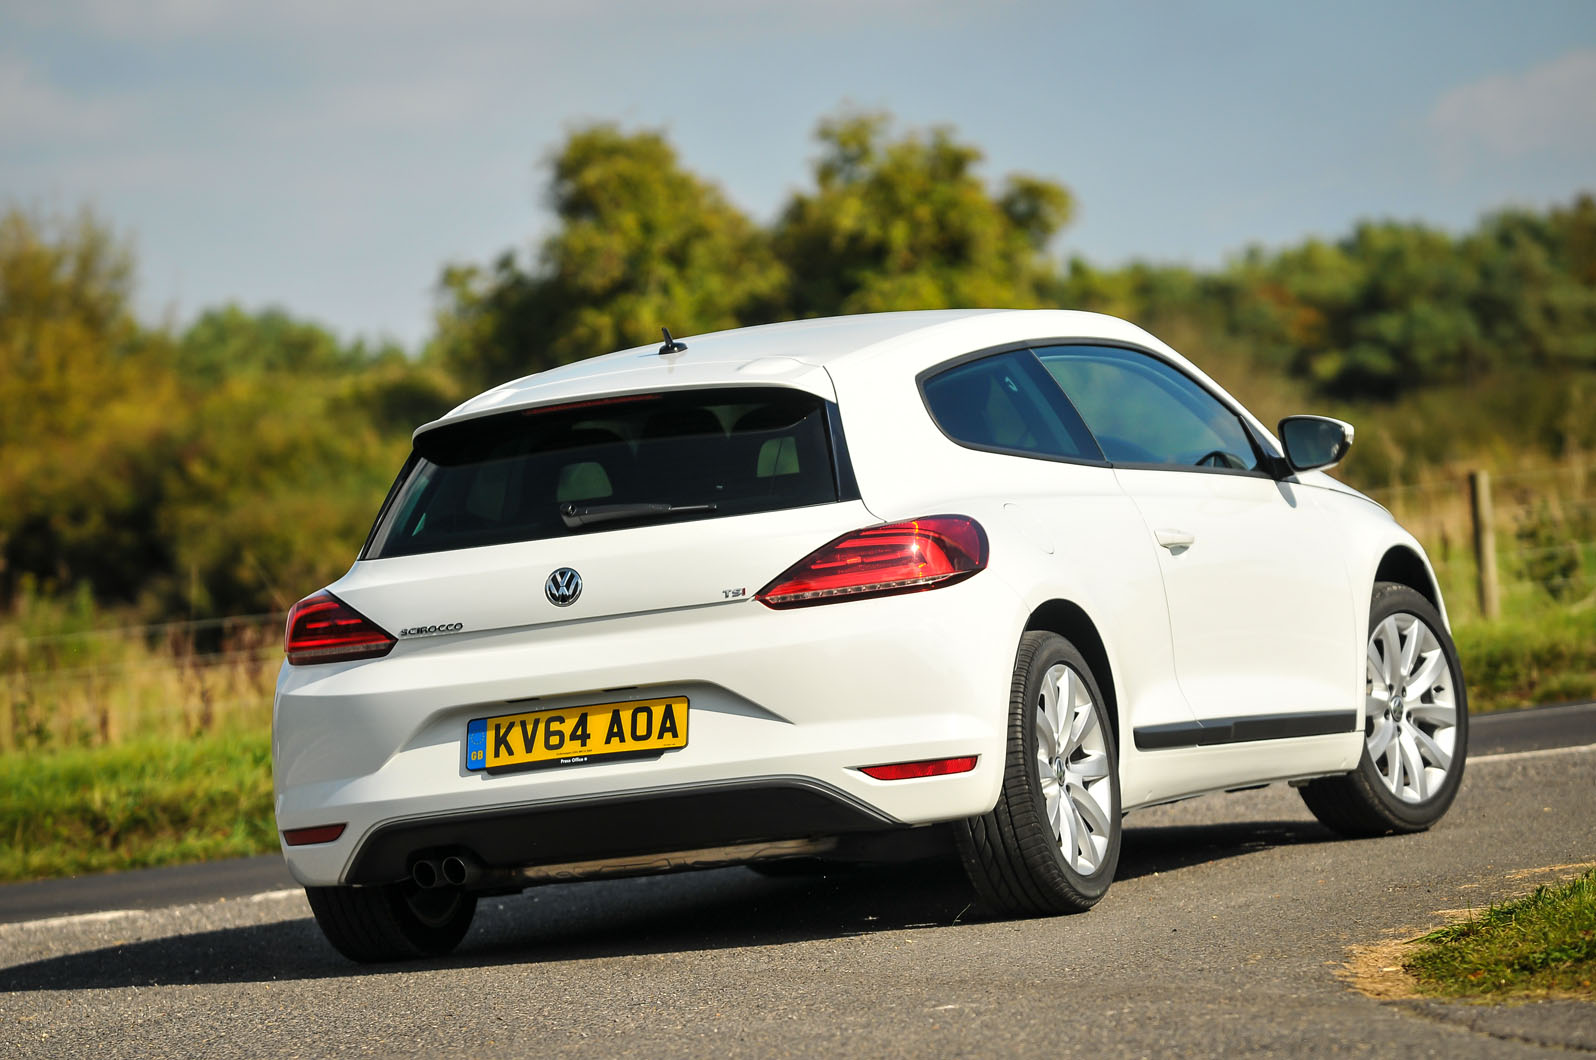 2014 volkswagen scirocco 1 4 tsi uk first drive review. Black Bedroom Furniture Sets. Home Design Ideas